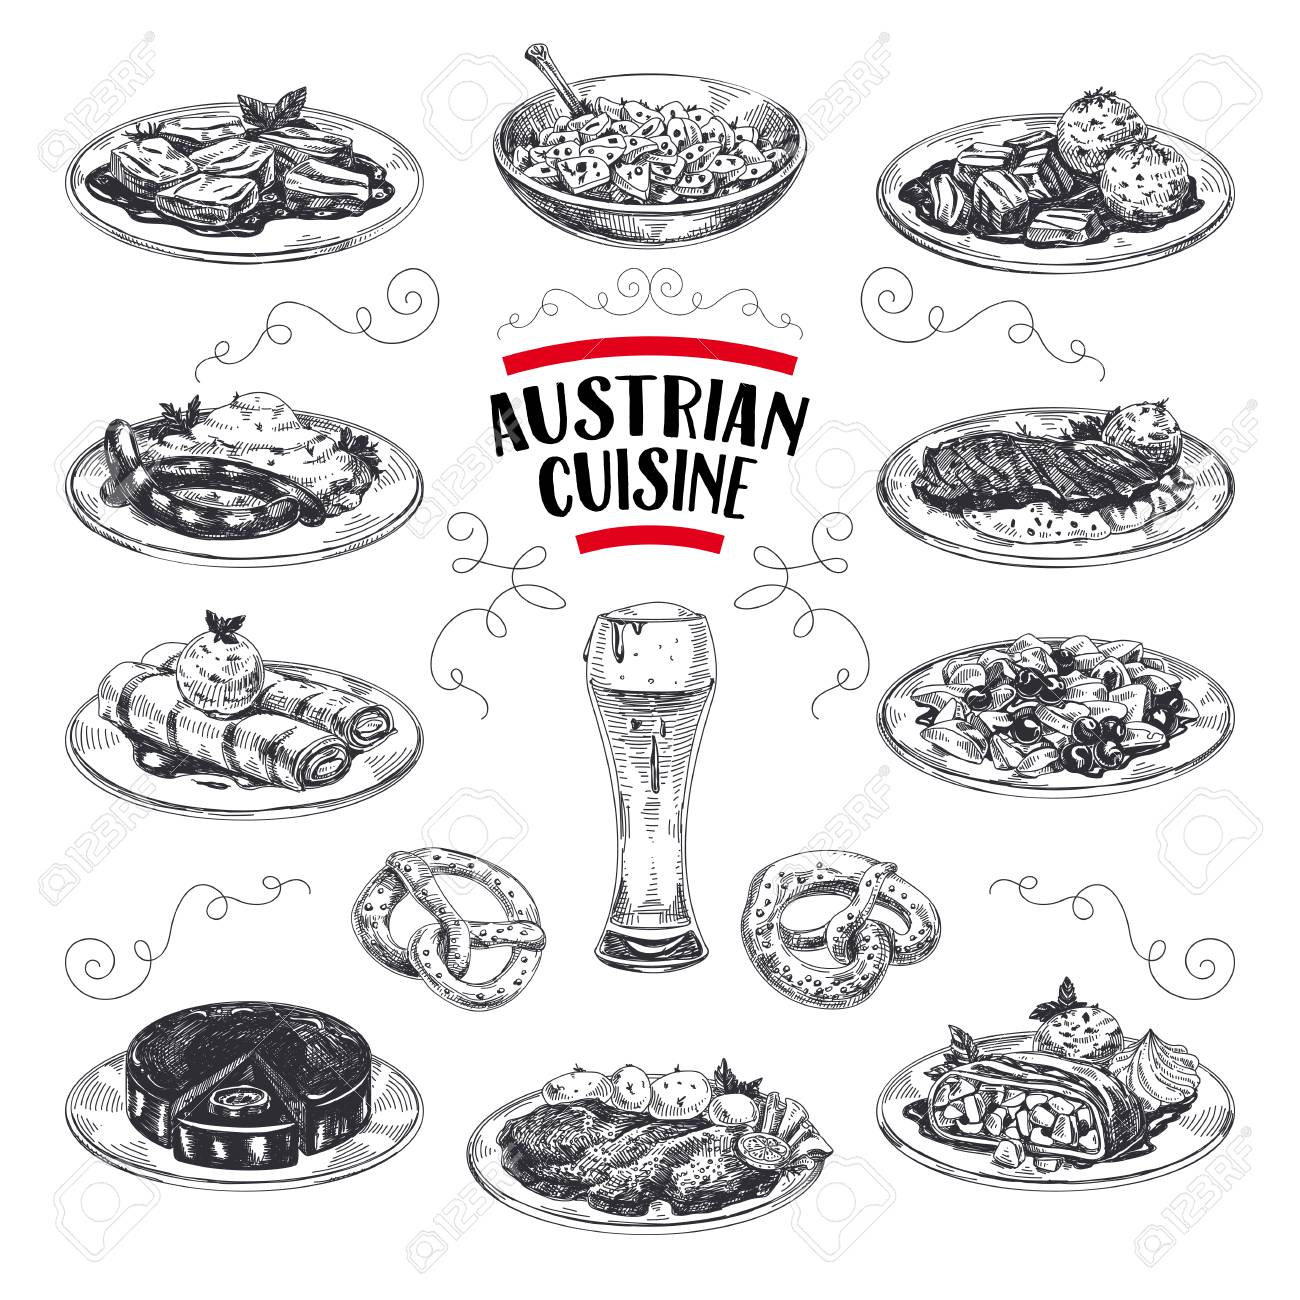 Beautiful vector hand drawn austrian cuisine Illustrations set. Detailed retro style images. Vintage sketch elements for labels, packaging and cards design. Modern background. - 104284334